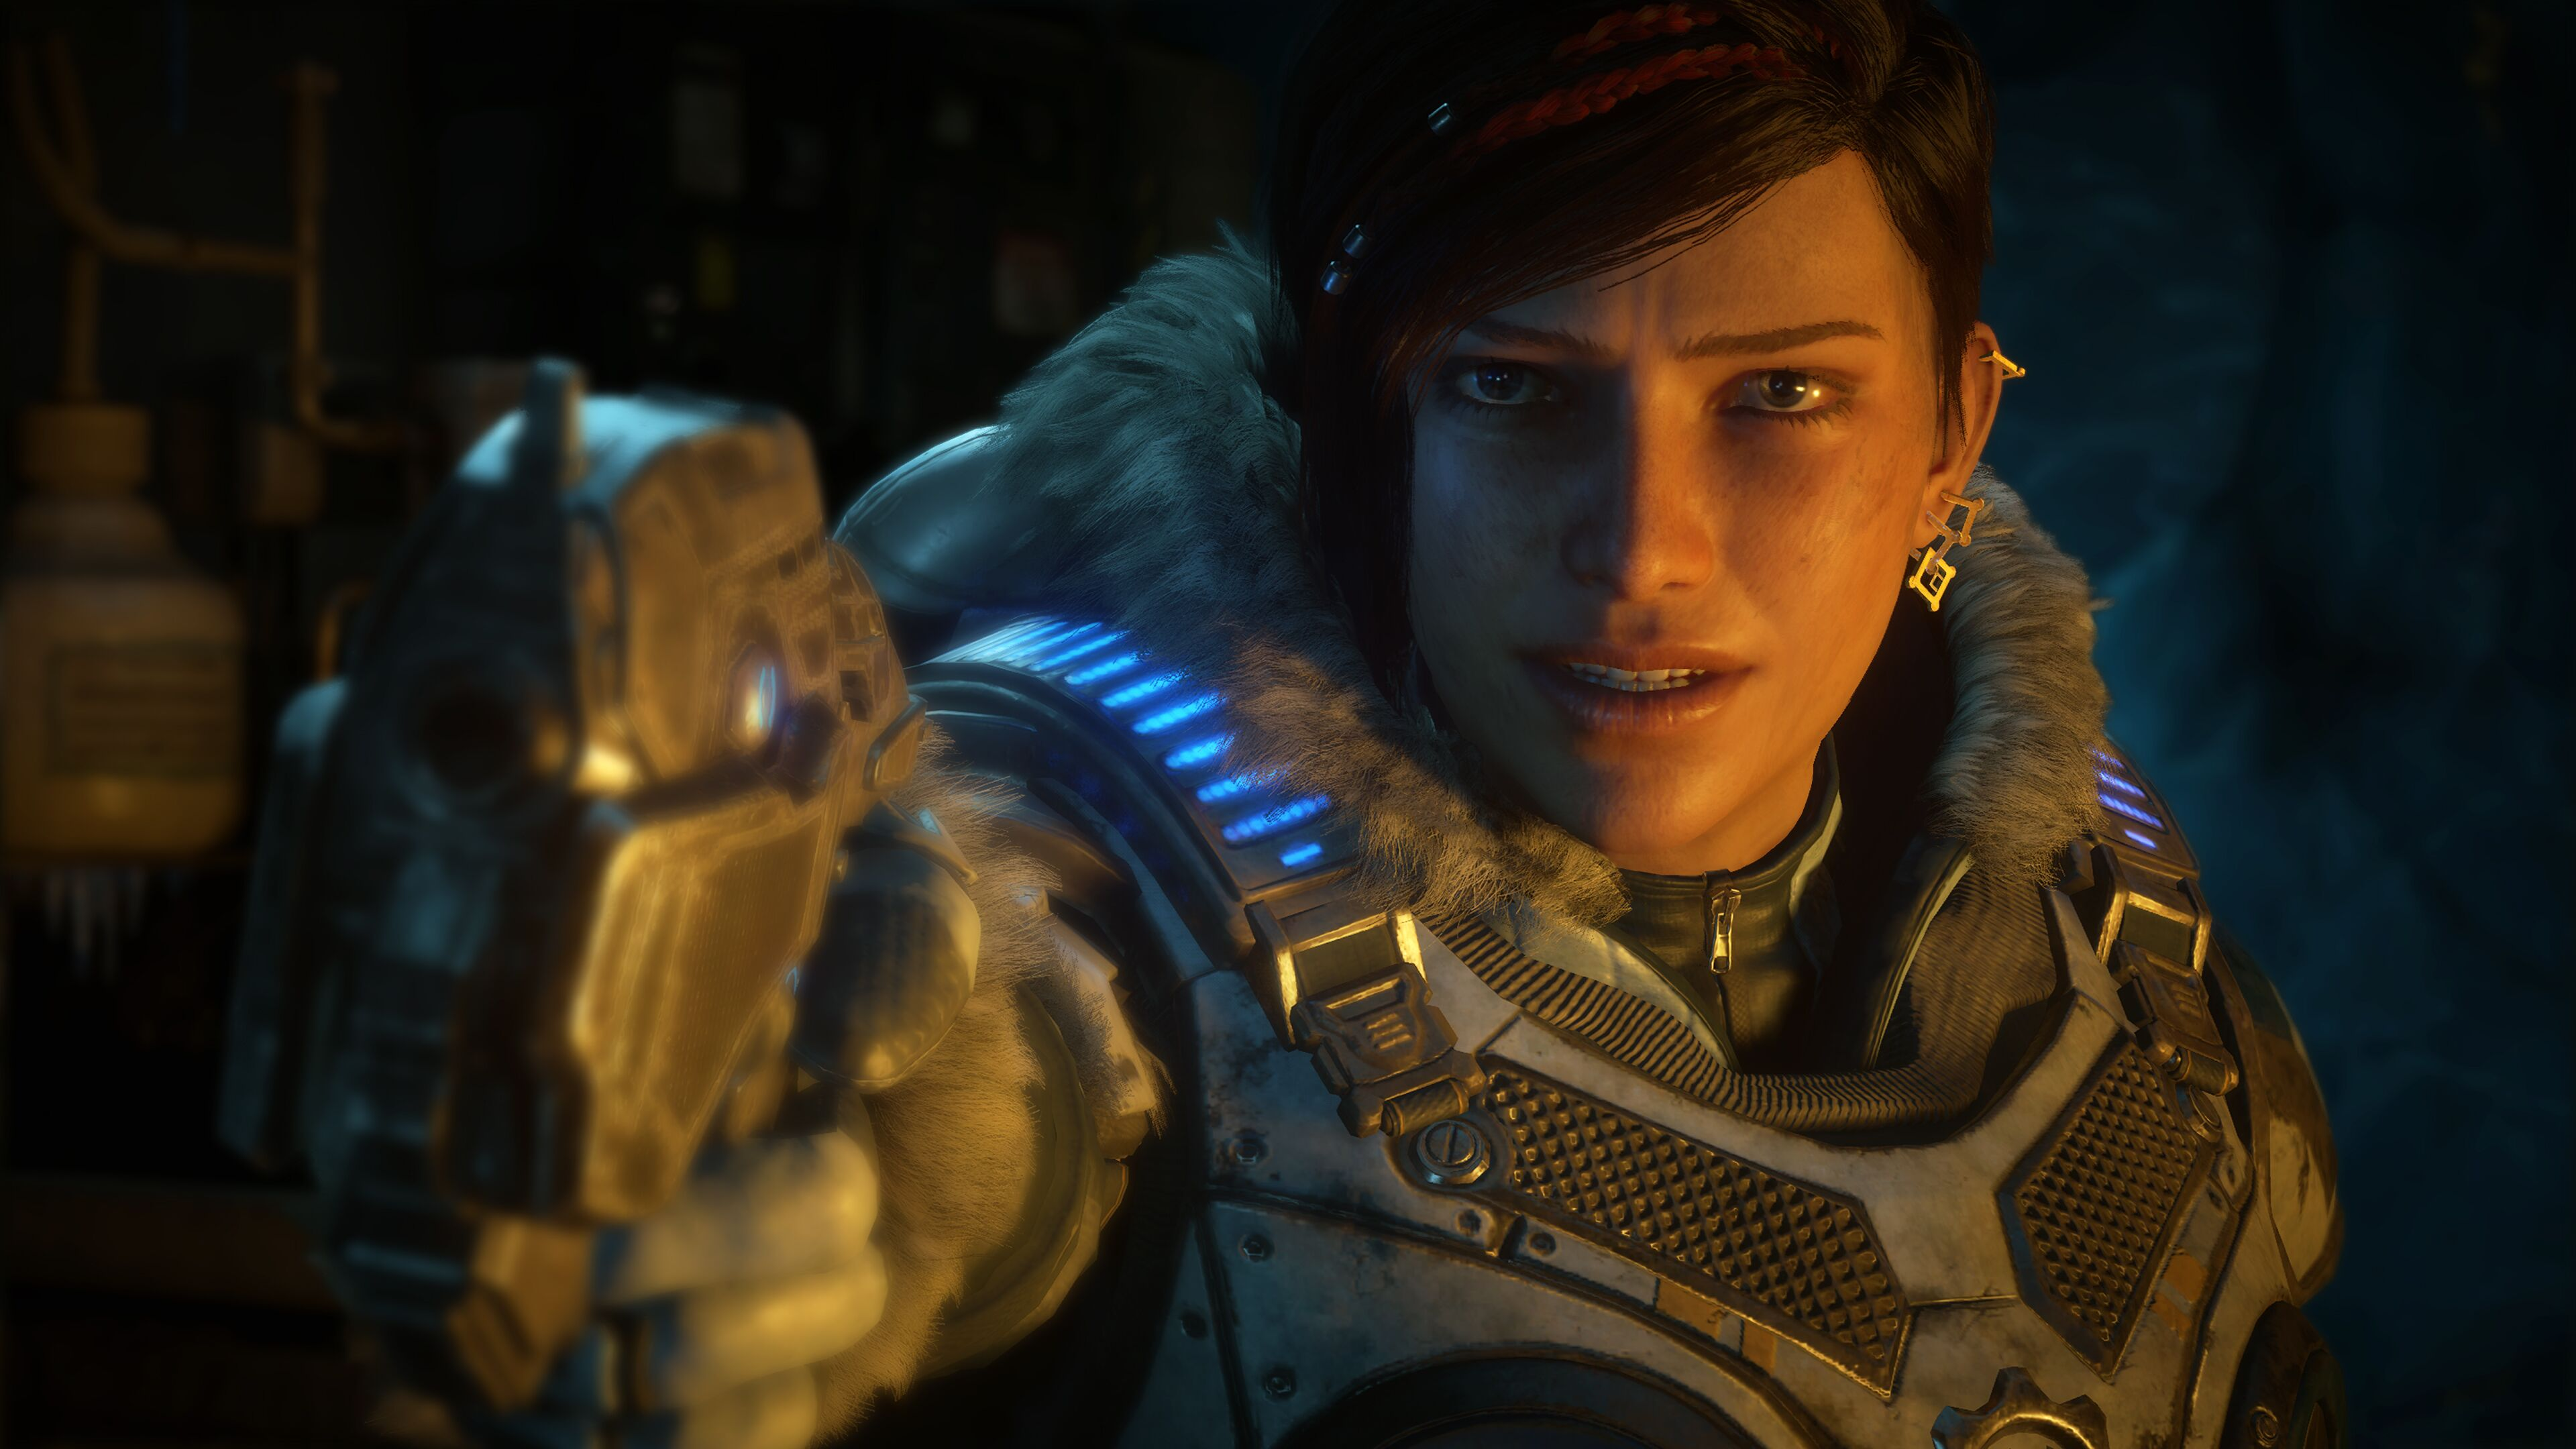 Gears 5: What you need to know about the story so far